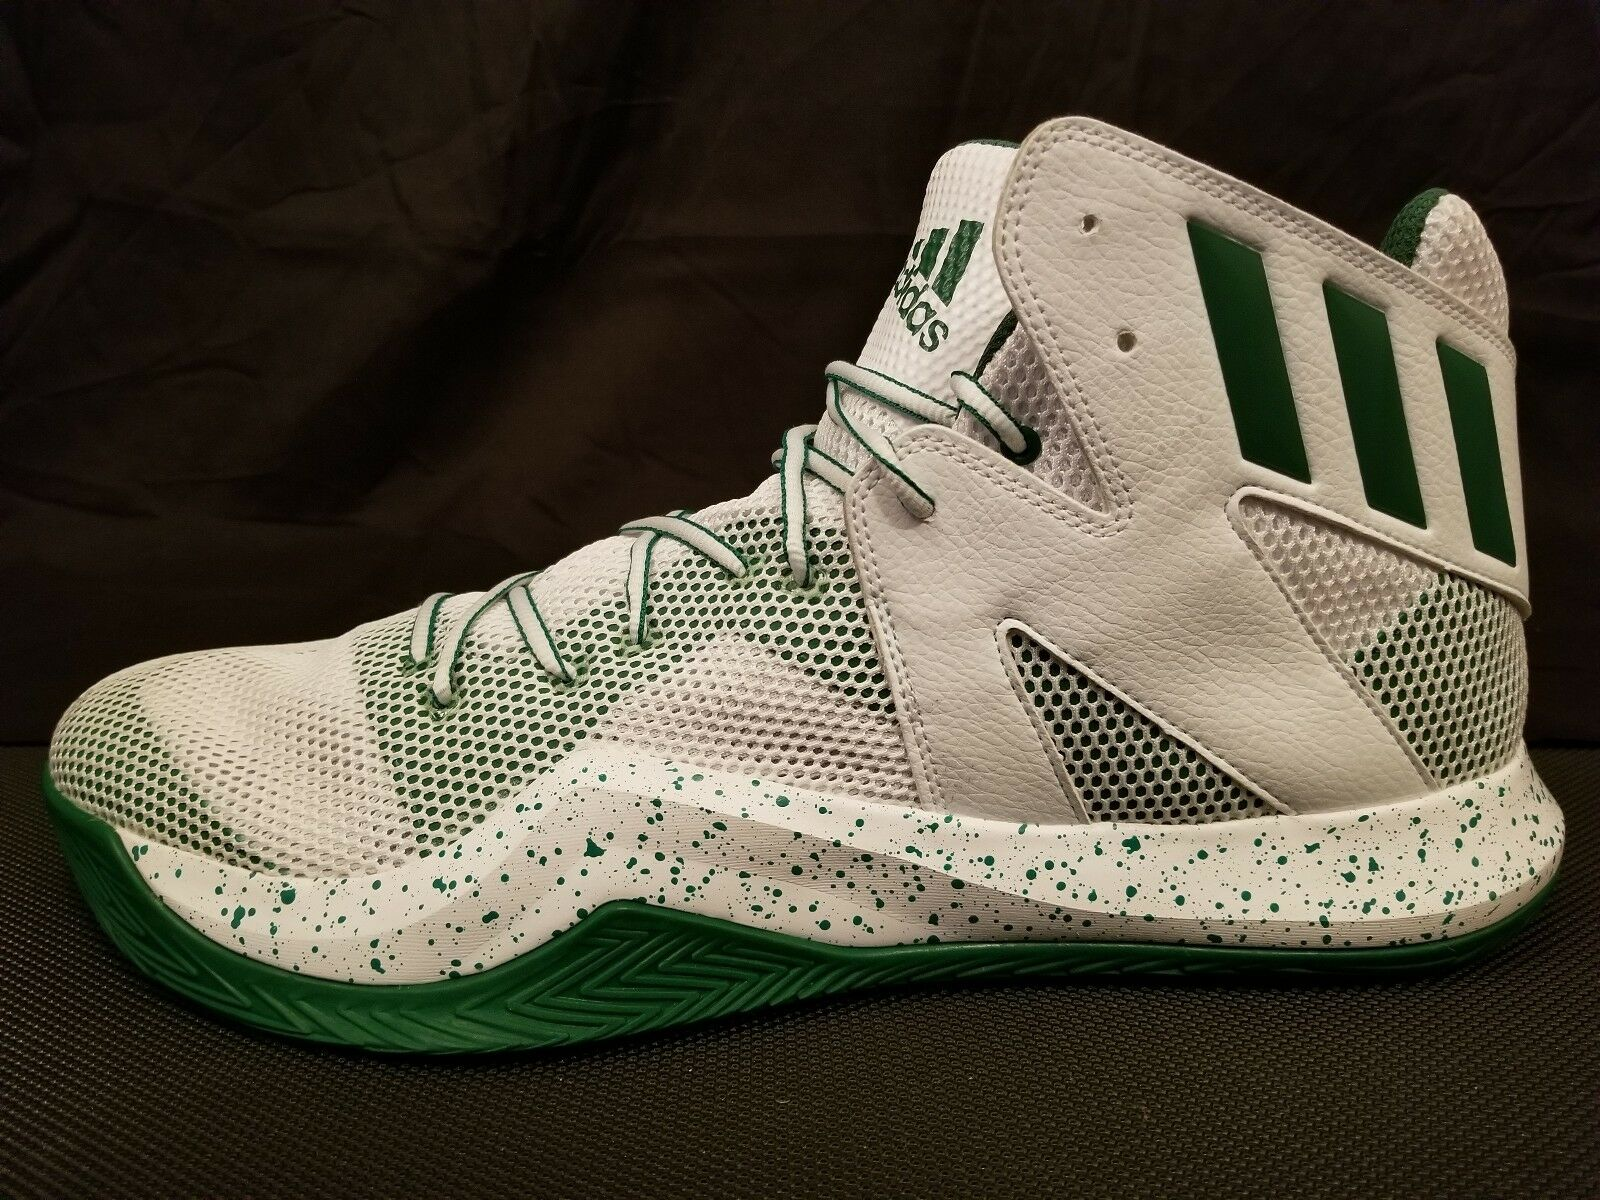 Adidas Bounce Basketball Shoes White/Green Rare Men's Size 17 **NEW**